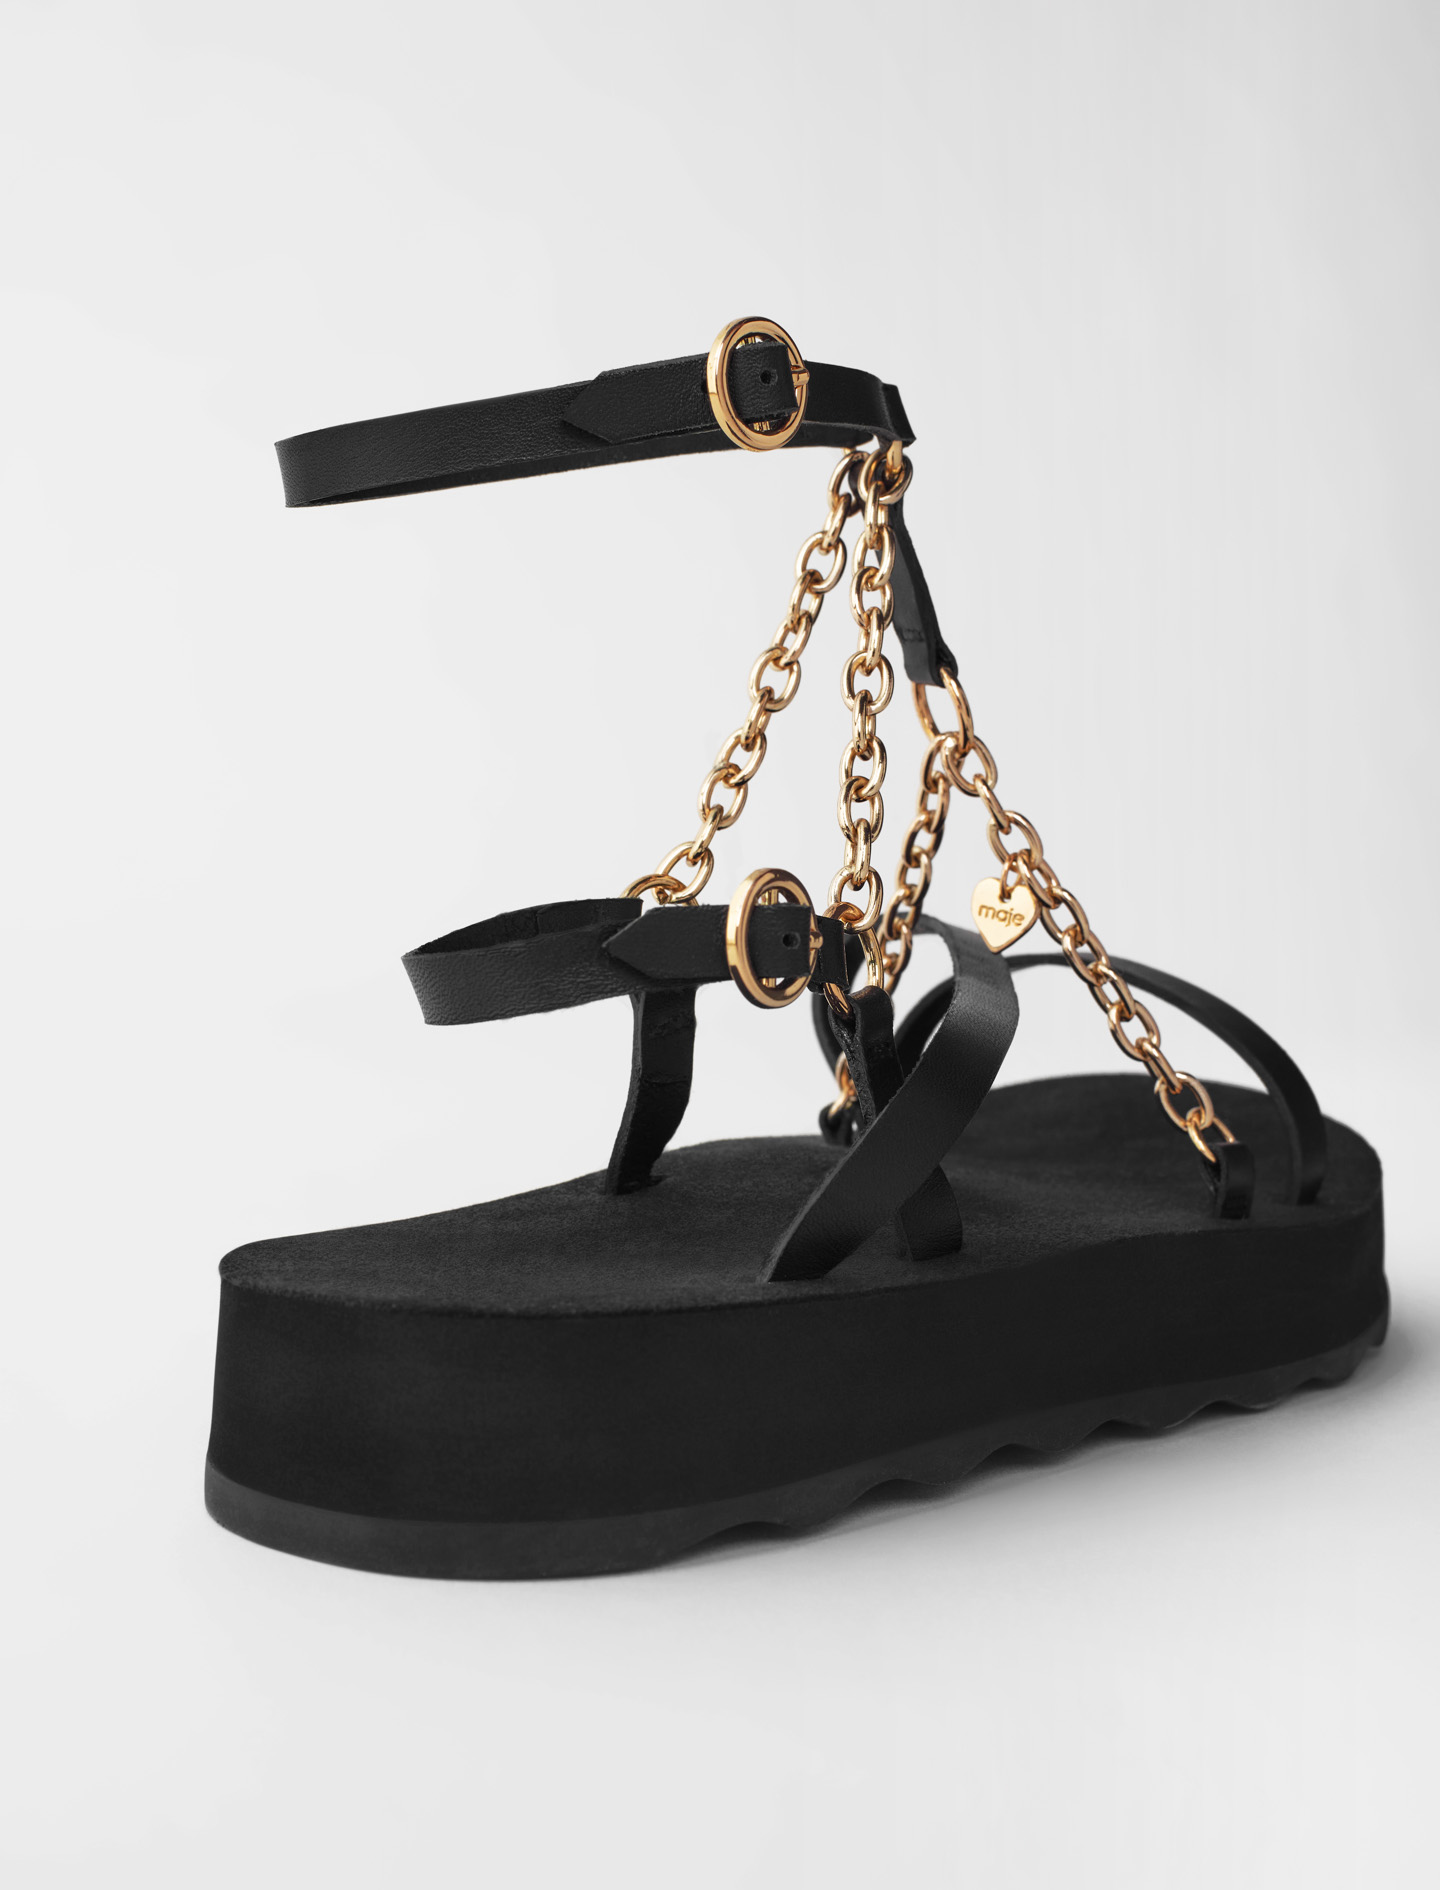 Sandals with leather straps and chain - Black